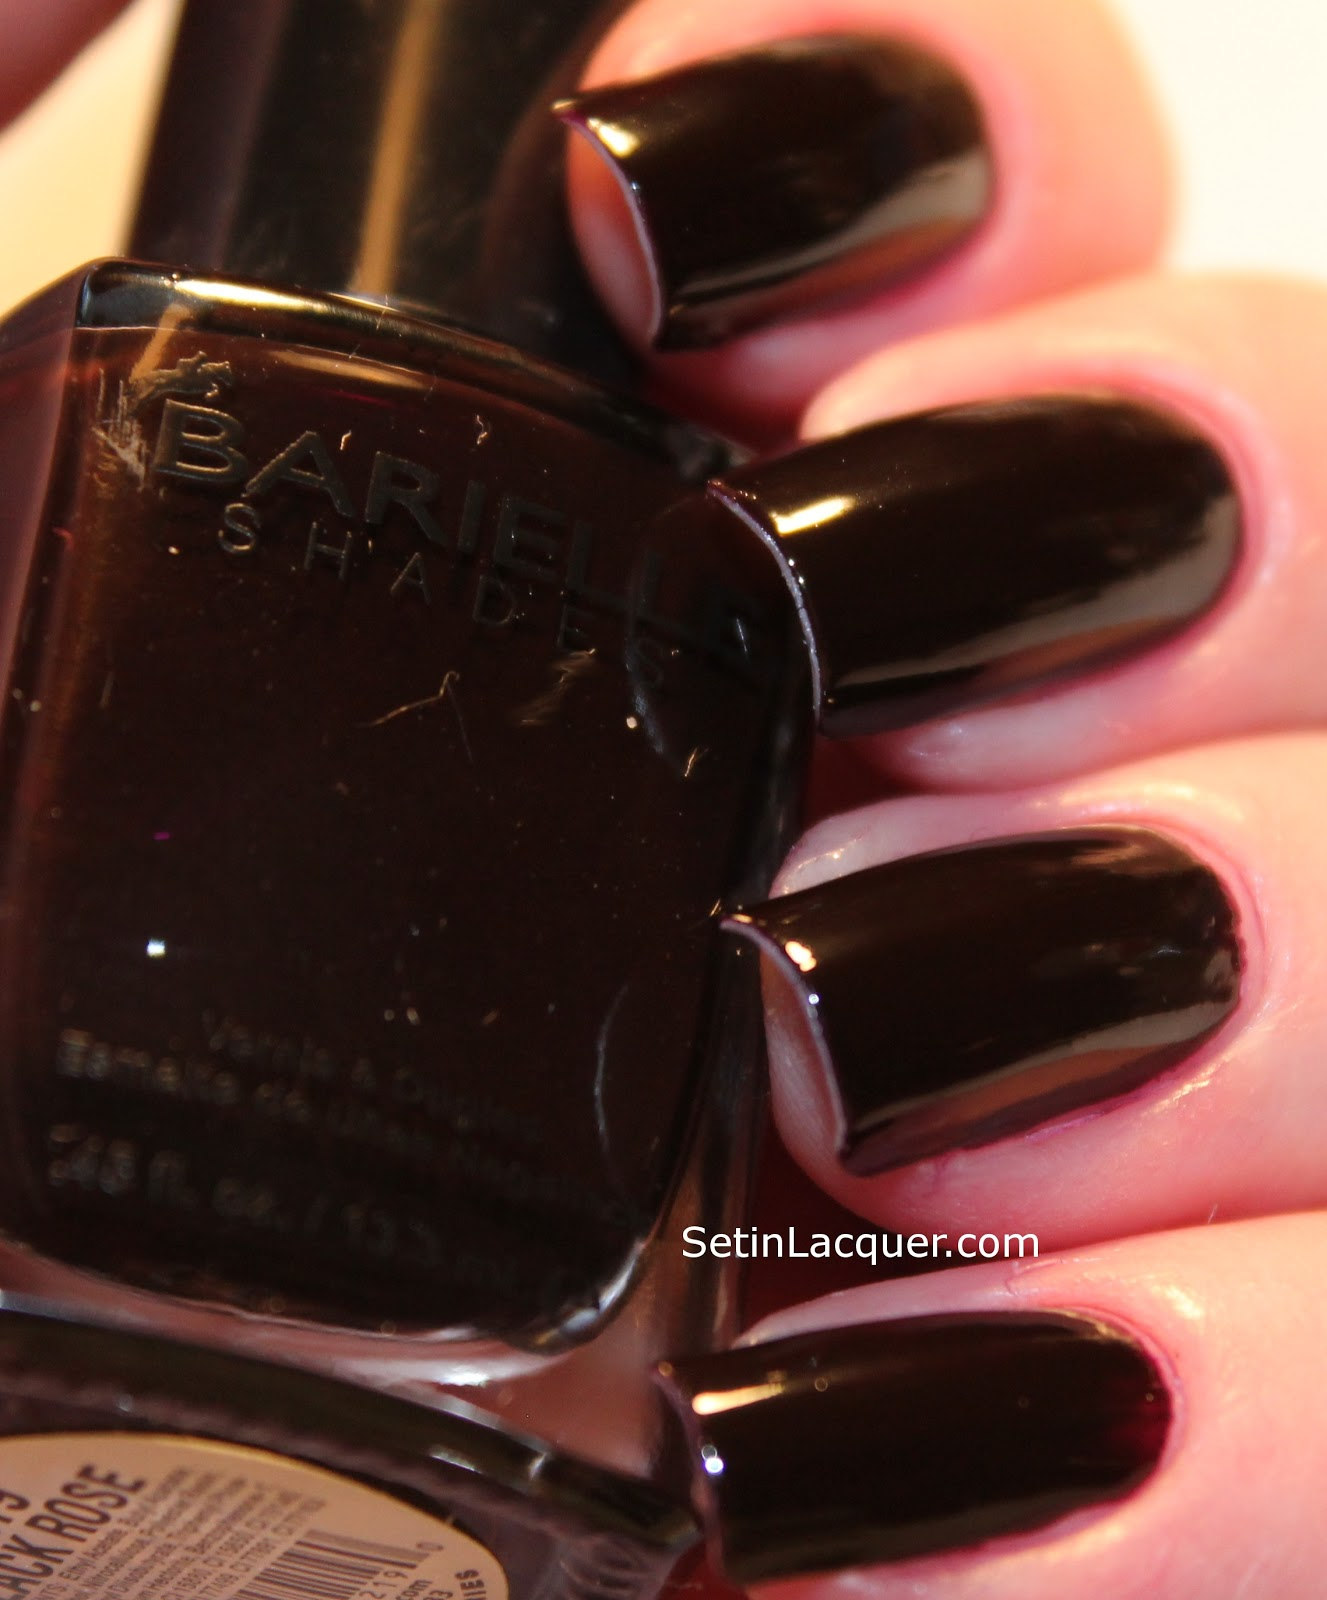 2012 - Set in Lacquer